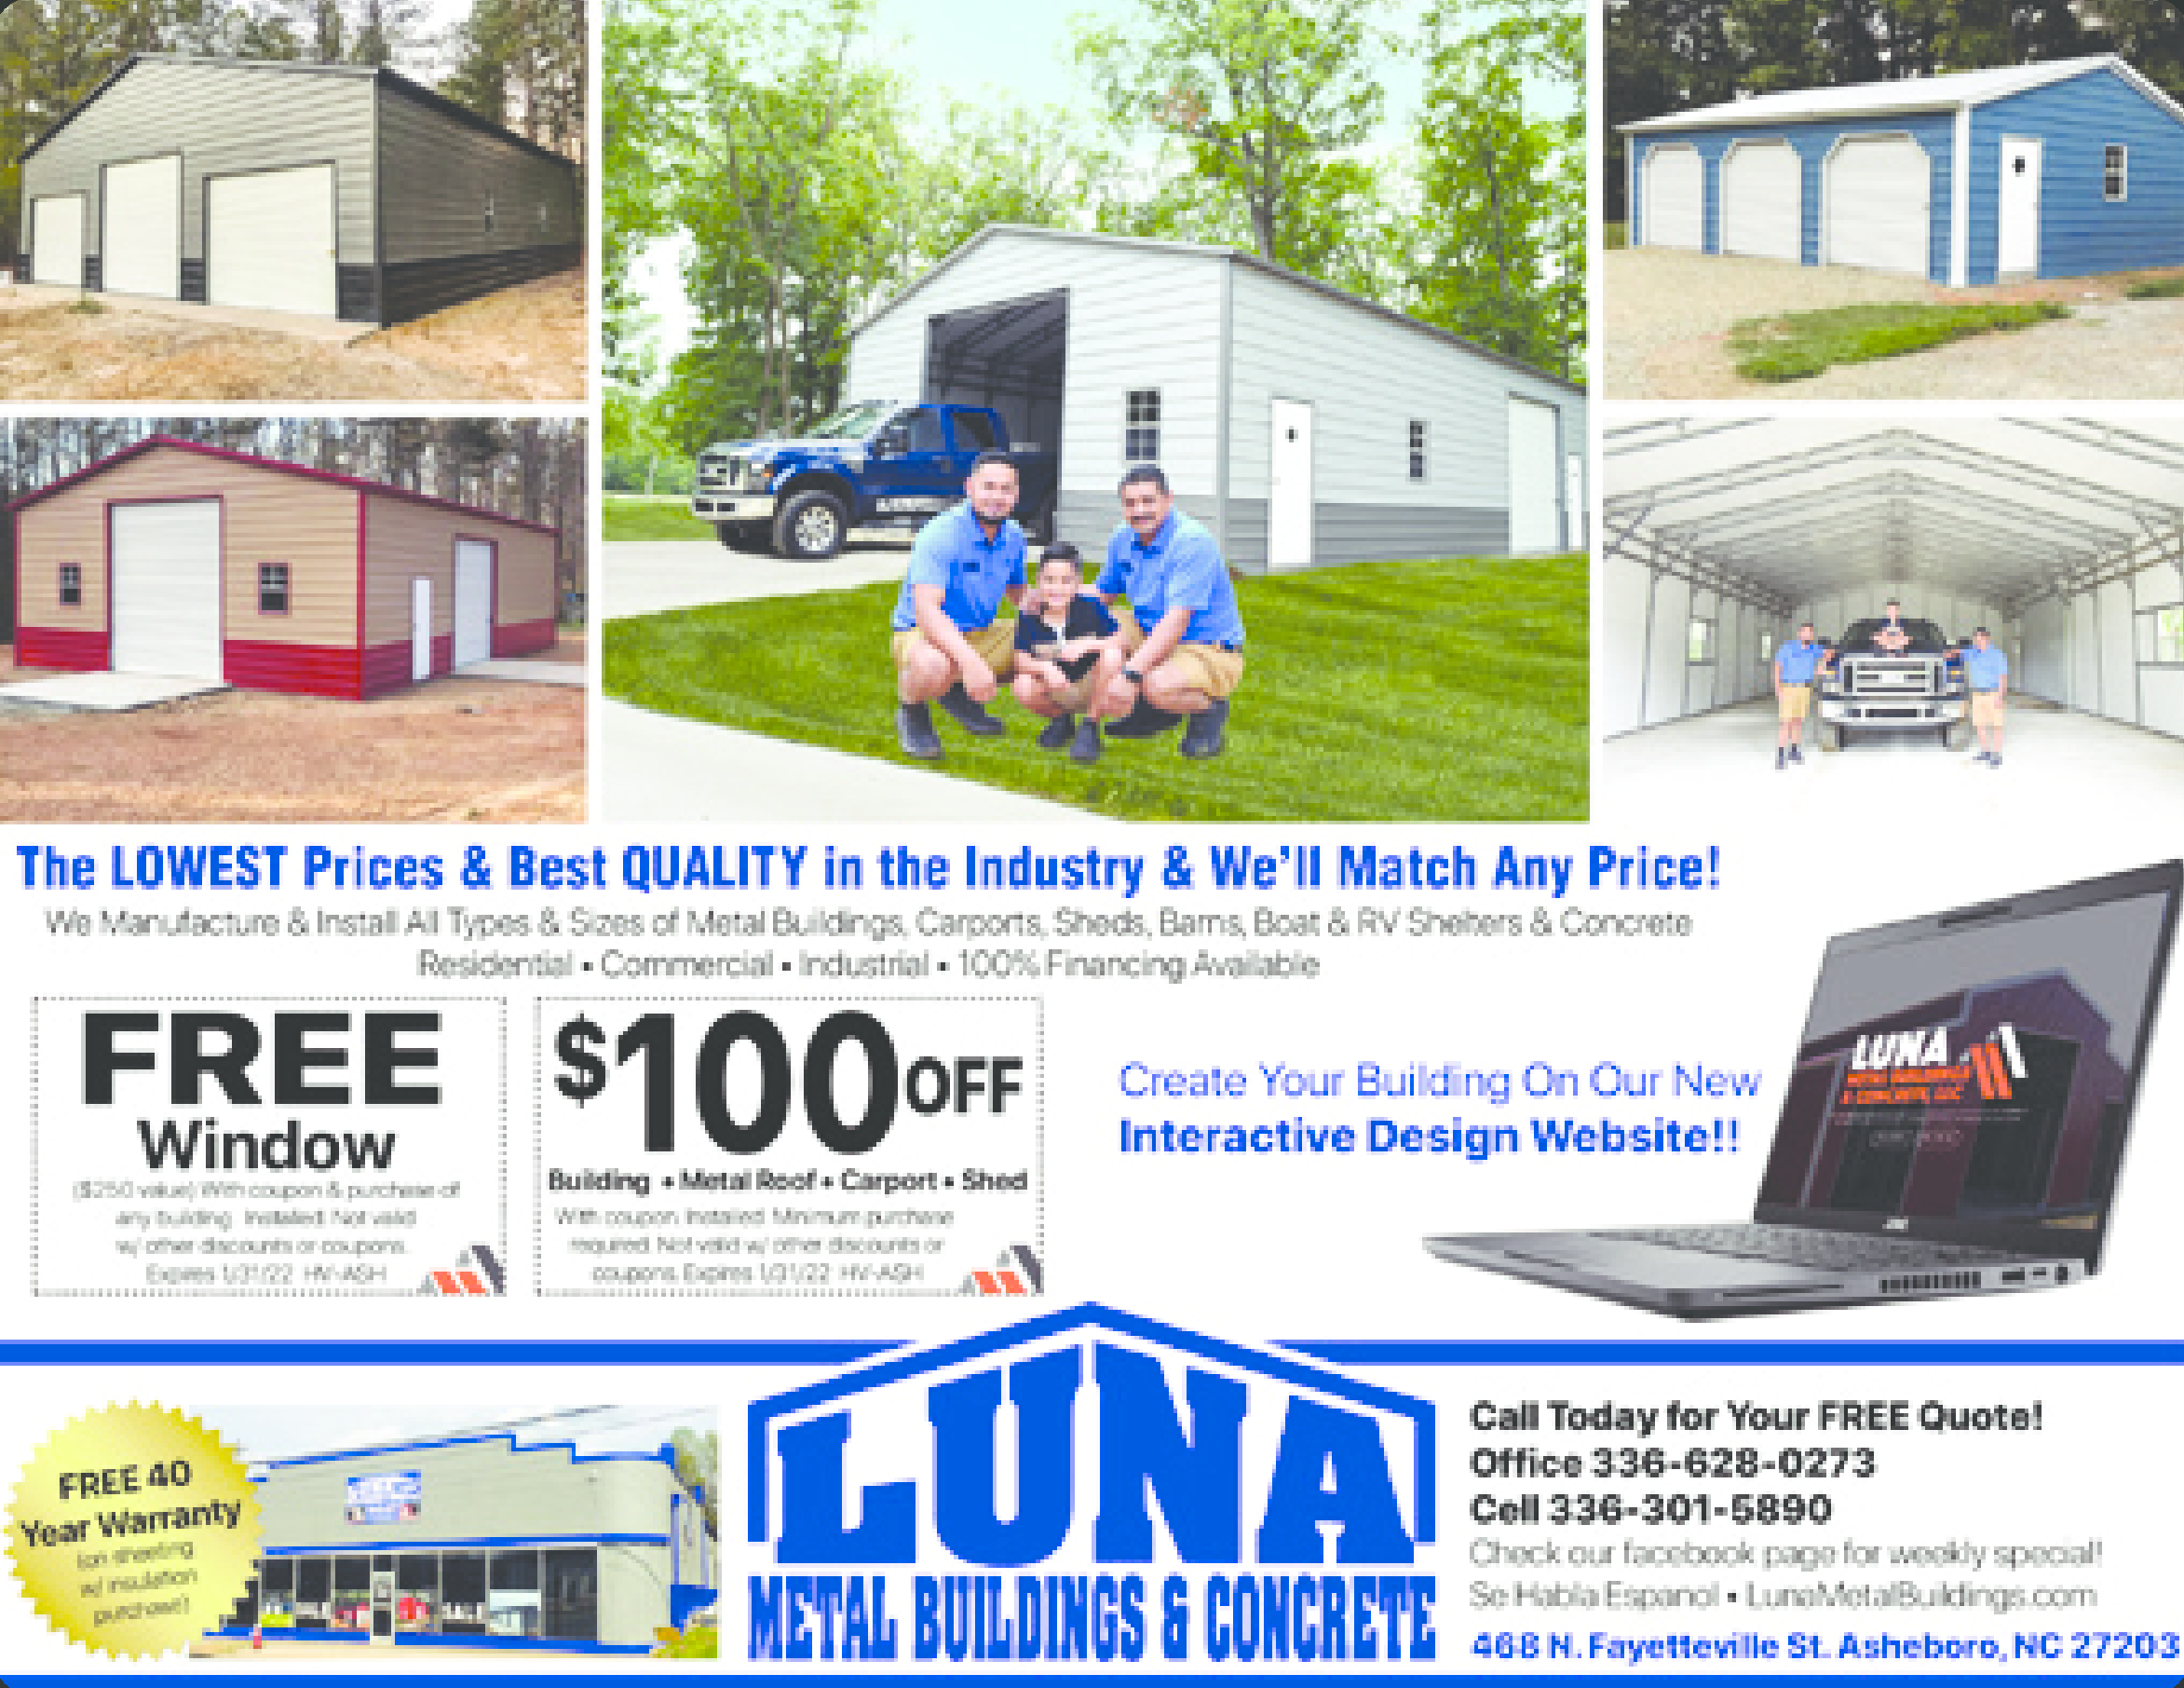 Luna Metal Buildings Concrete Llc Coupons